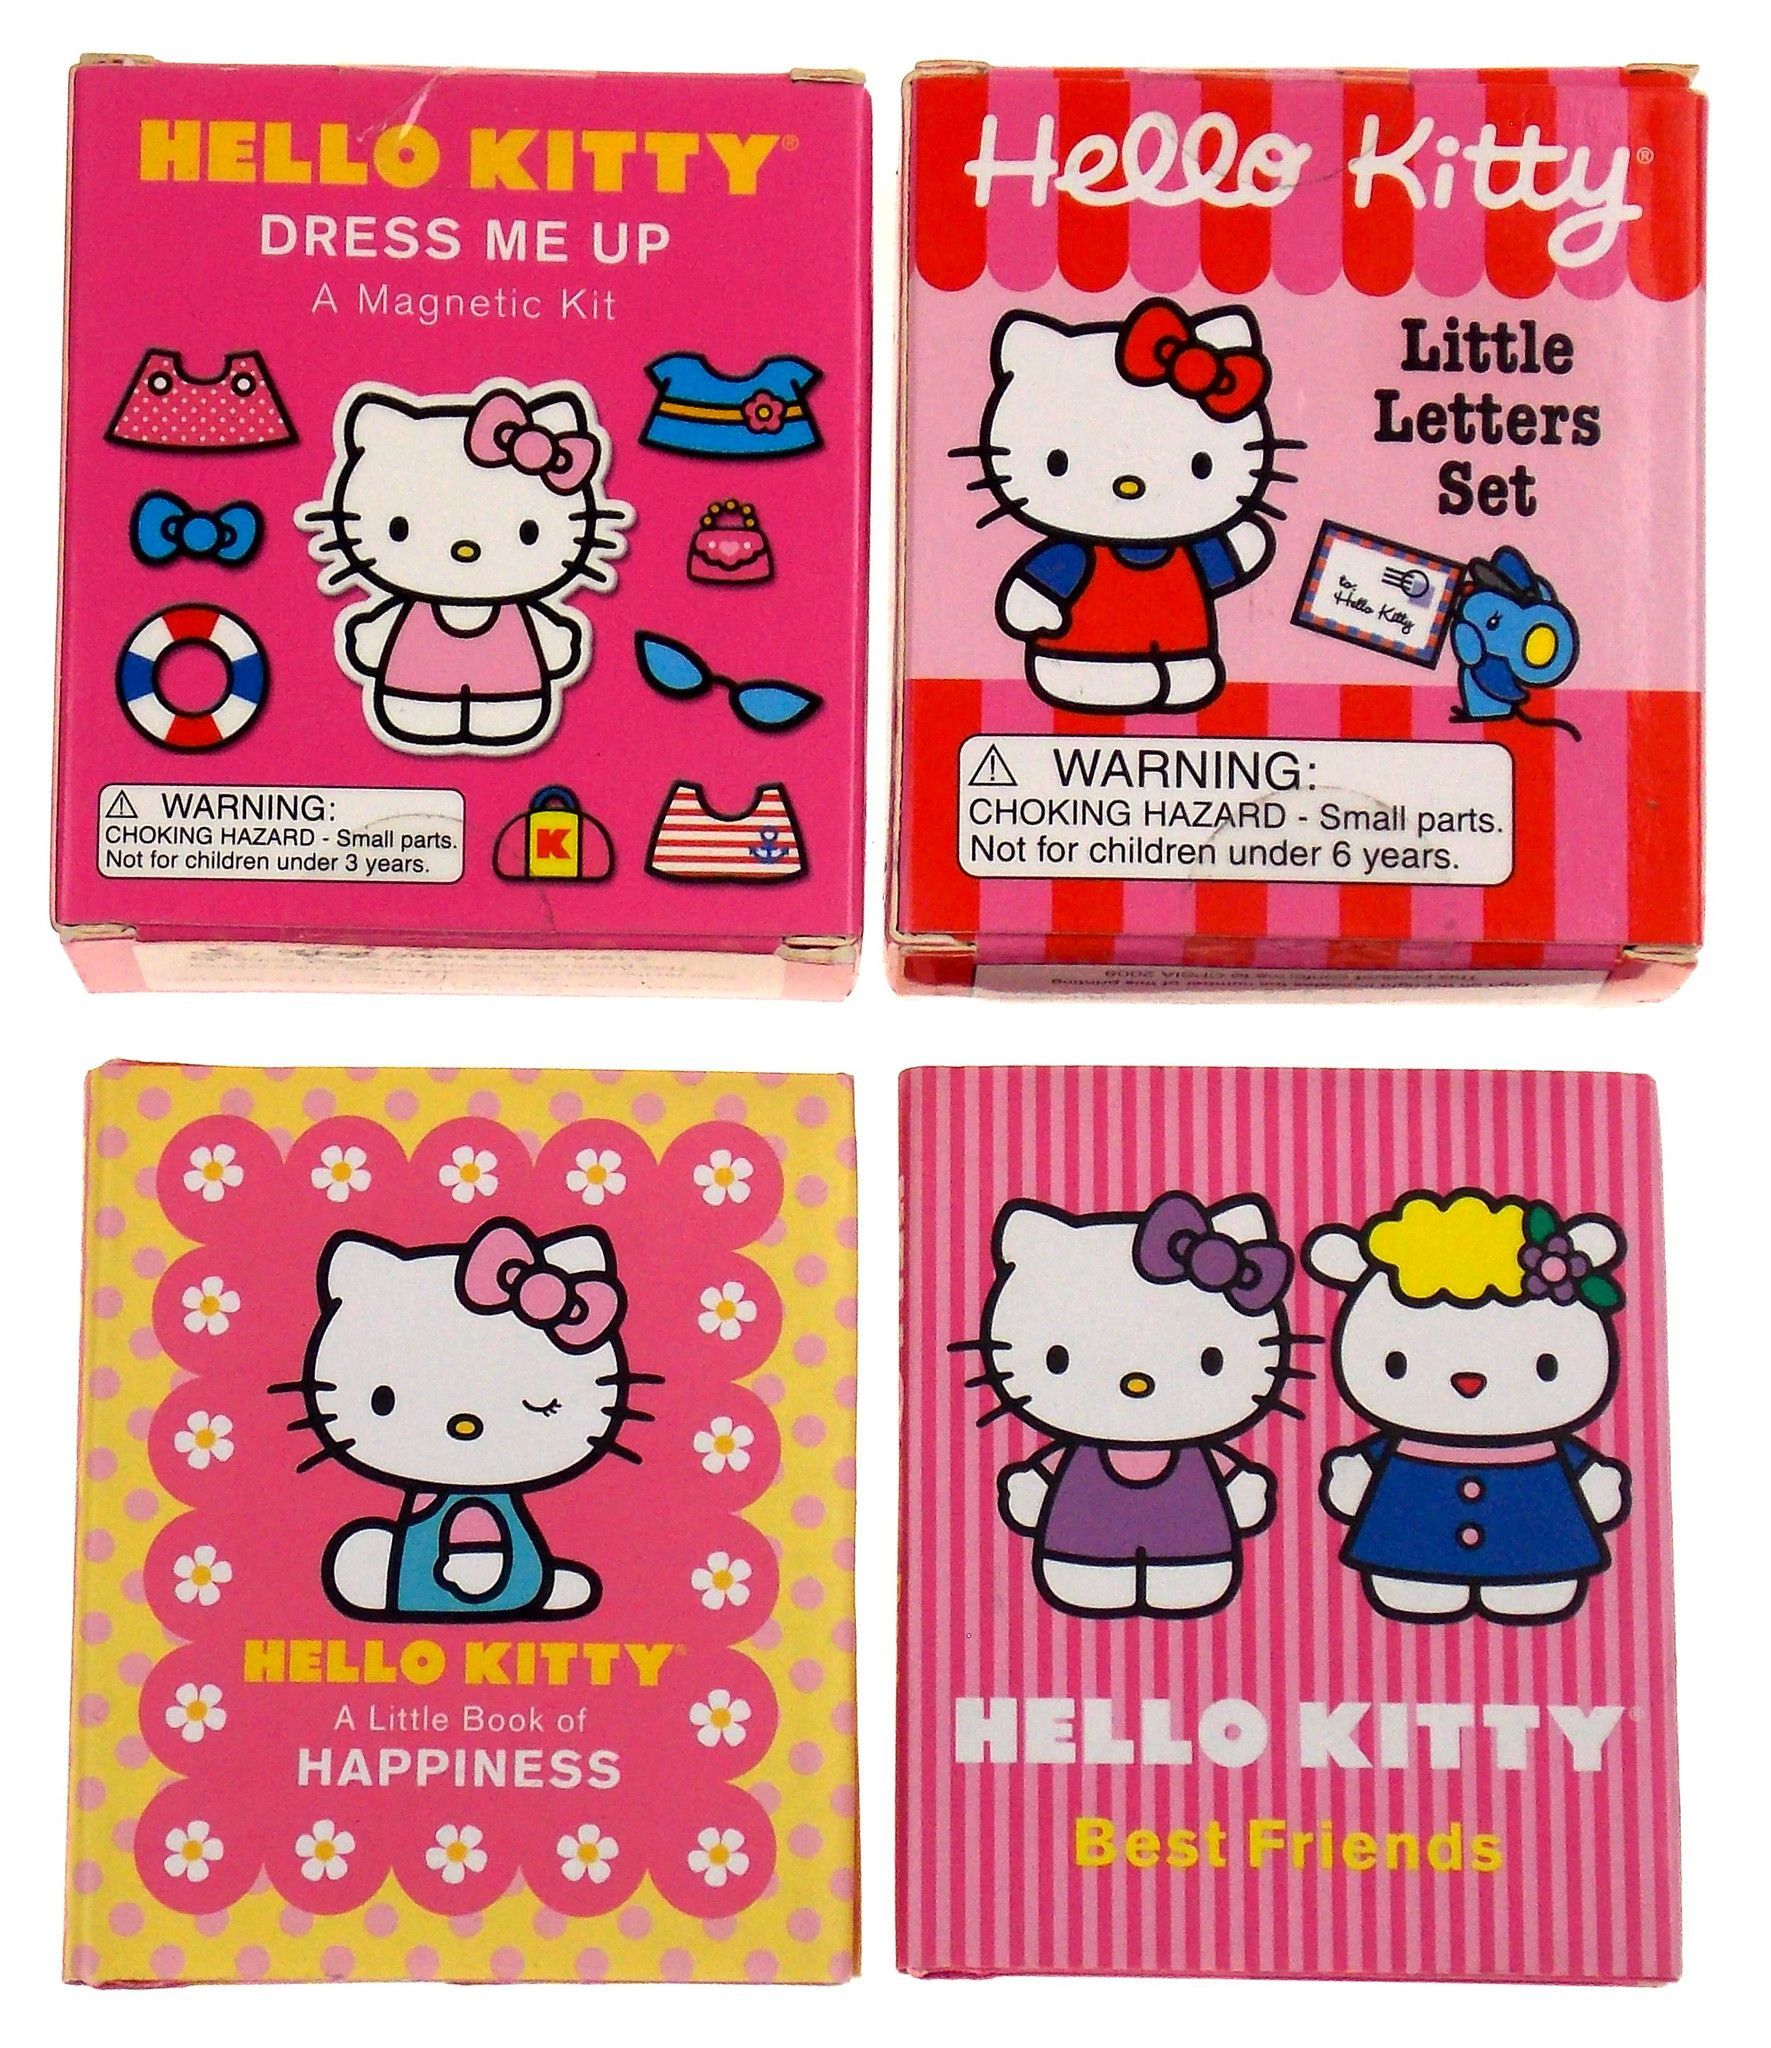 Lot 4 Hello Kitty Happiness Best Friends Little Letters Set Dress Me Up  Magnets